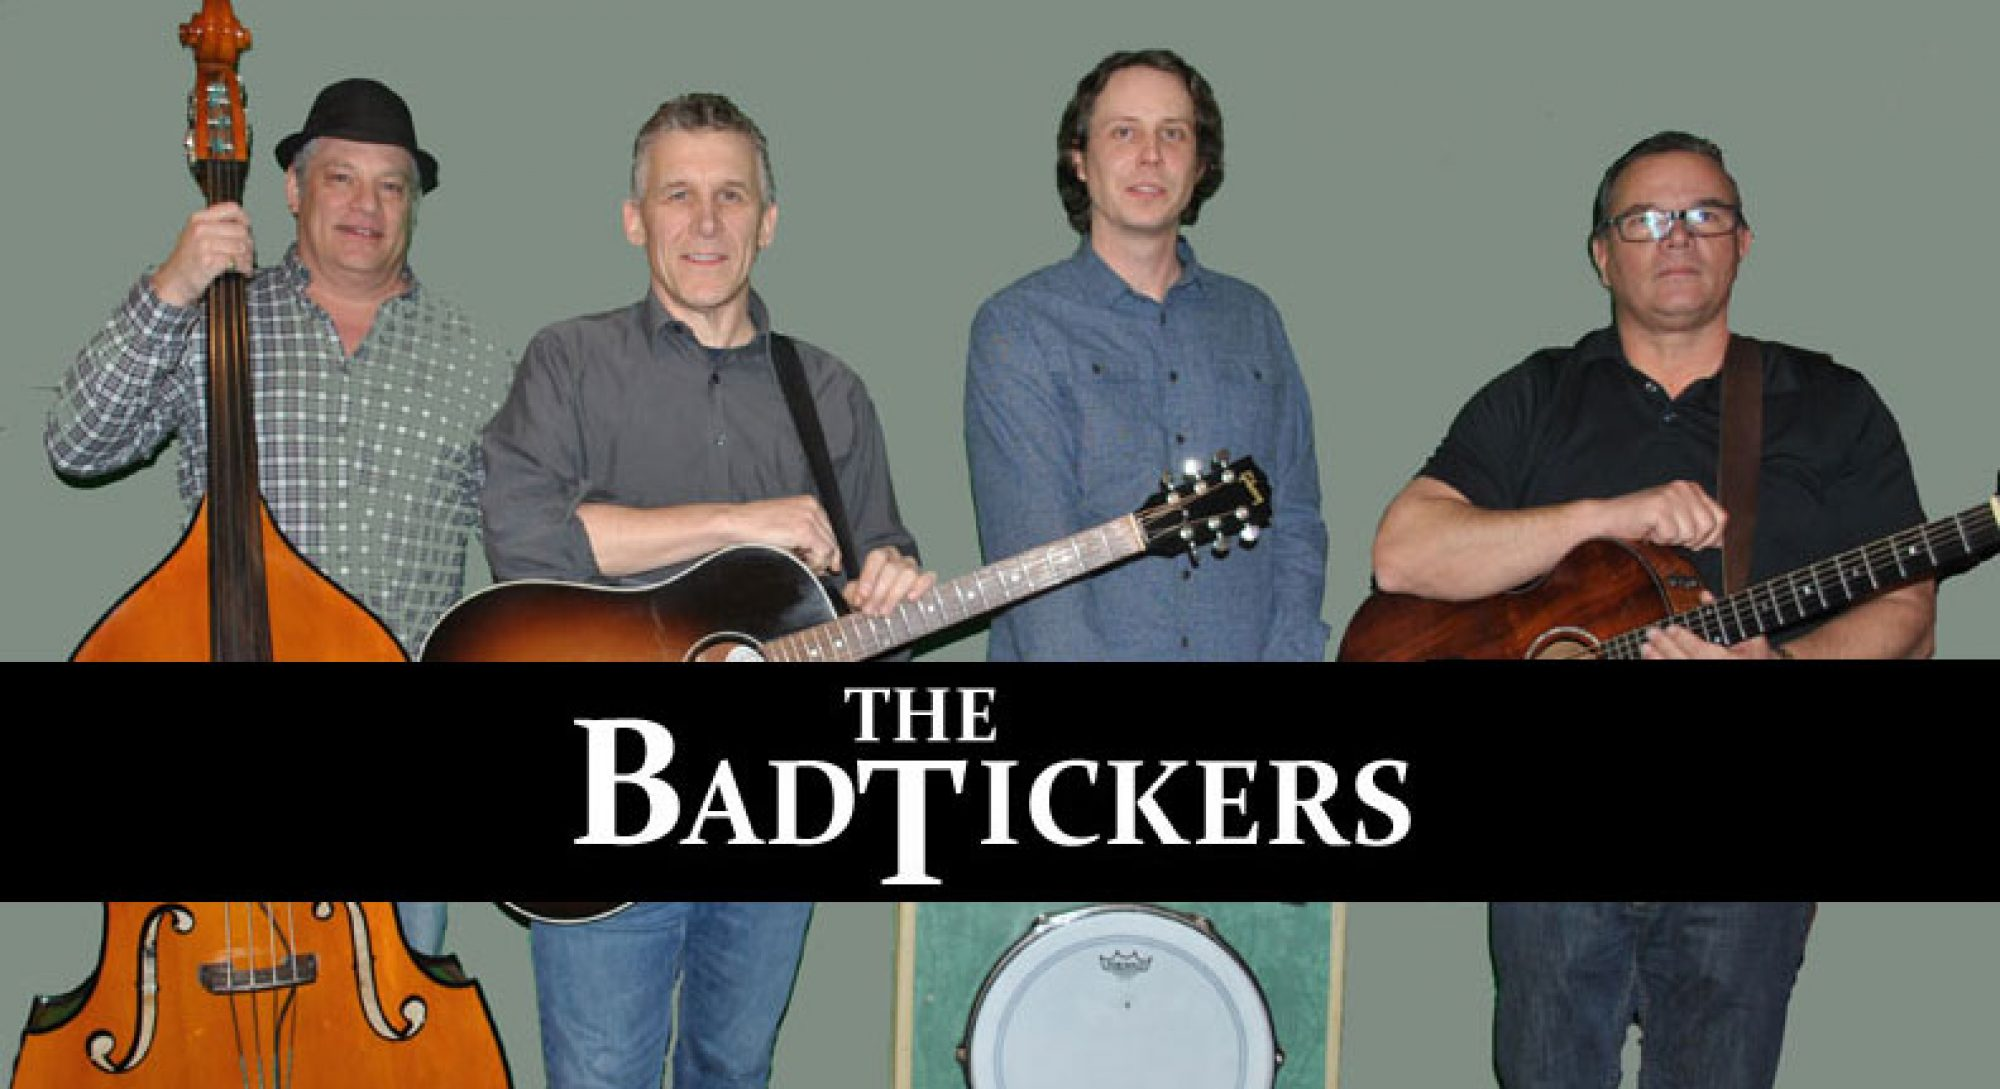 The Bad Tickers